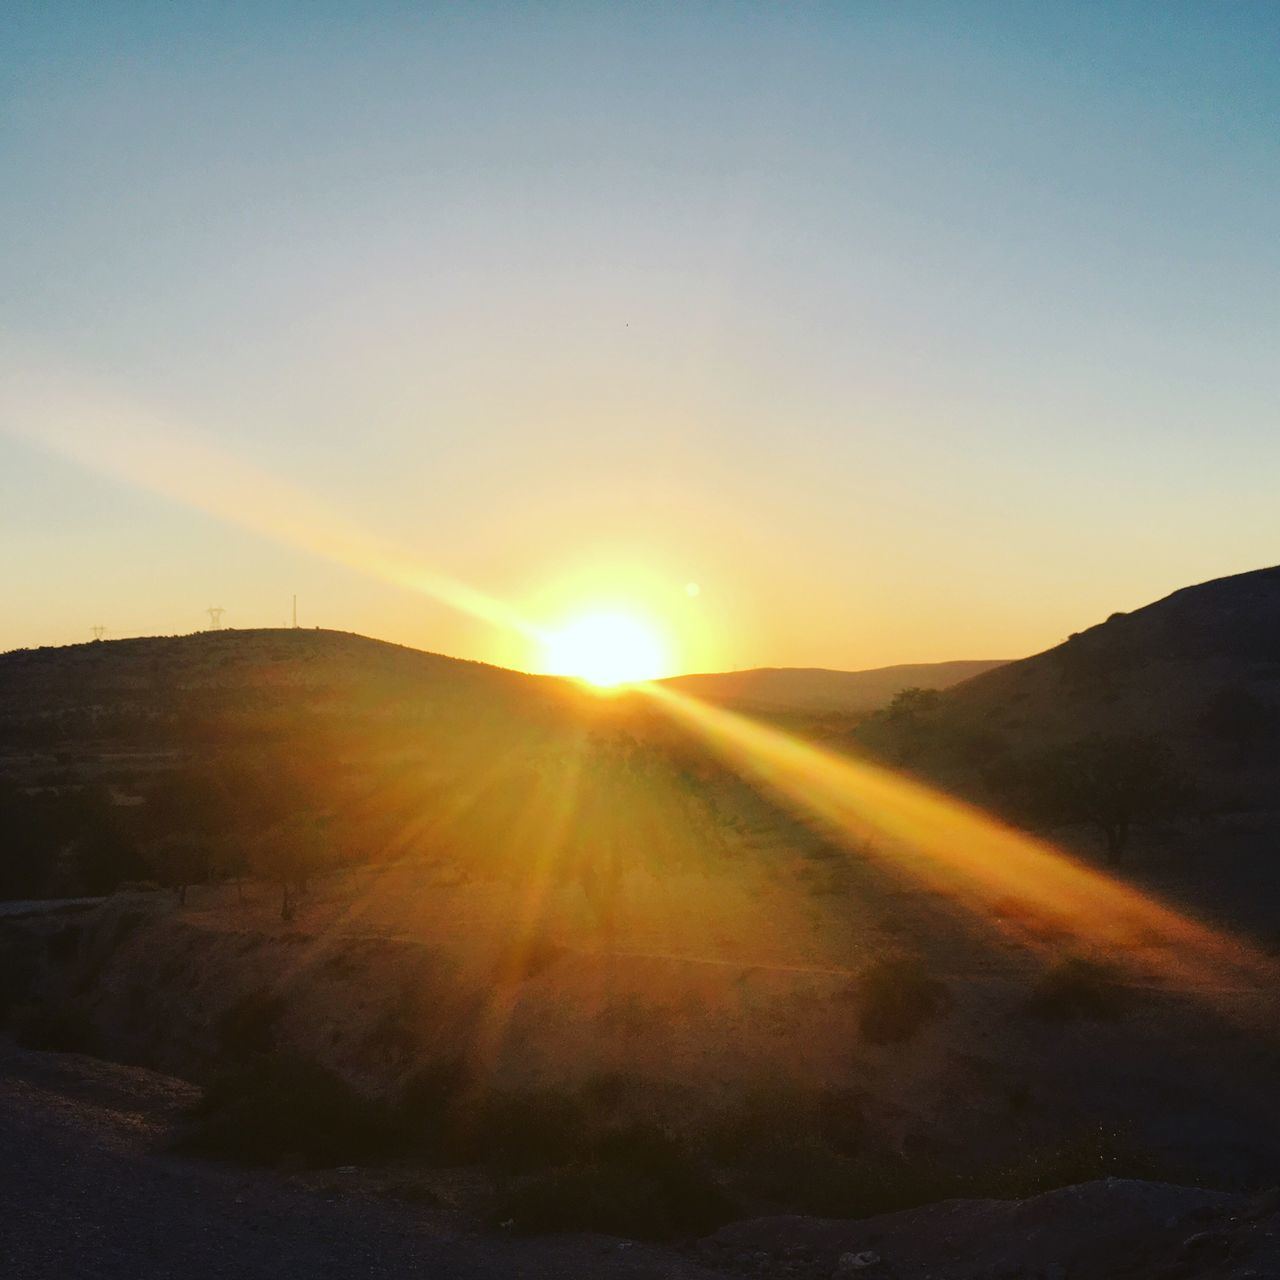 sun, sunbeam, sunset, sunlight, nature, silhouette, tranquility, tranquil scene, landscape, no people, scenics, beauty in nature, mountain, outdoors, sky, day